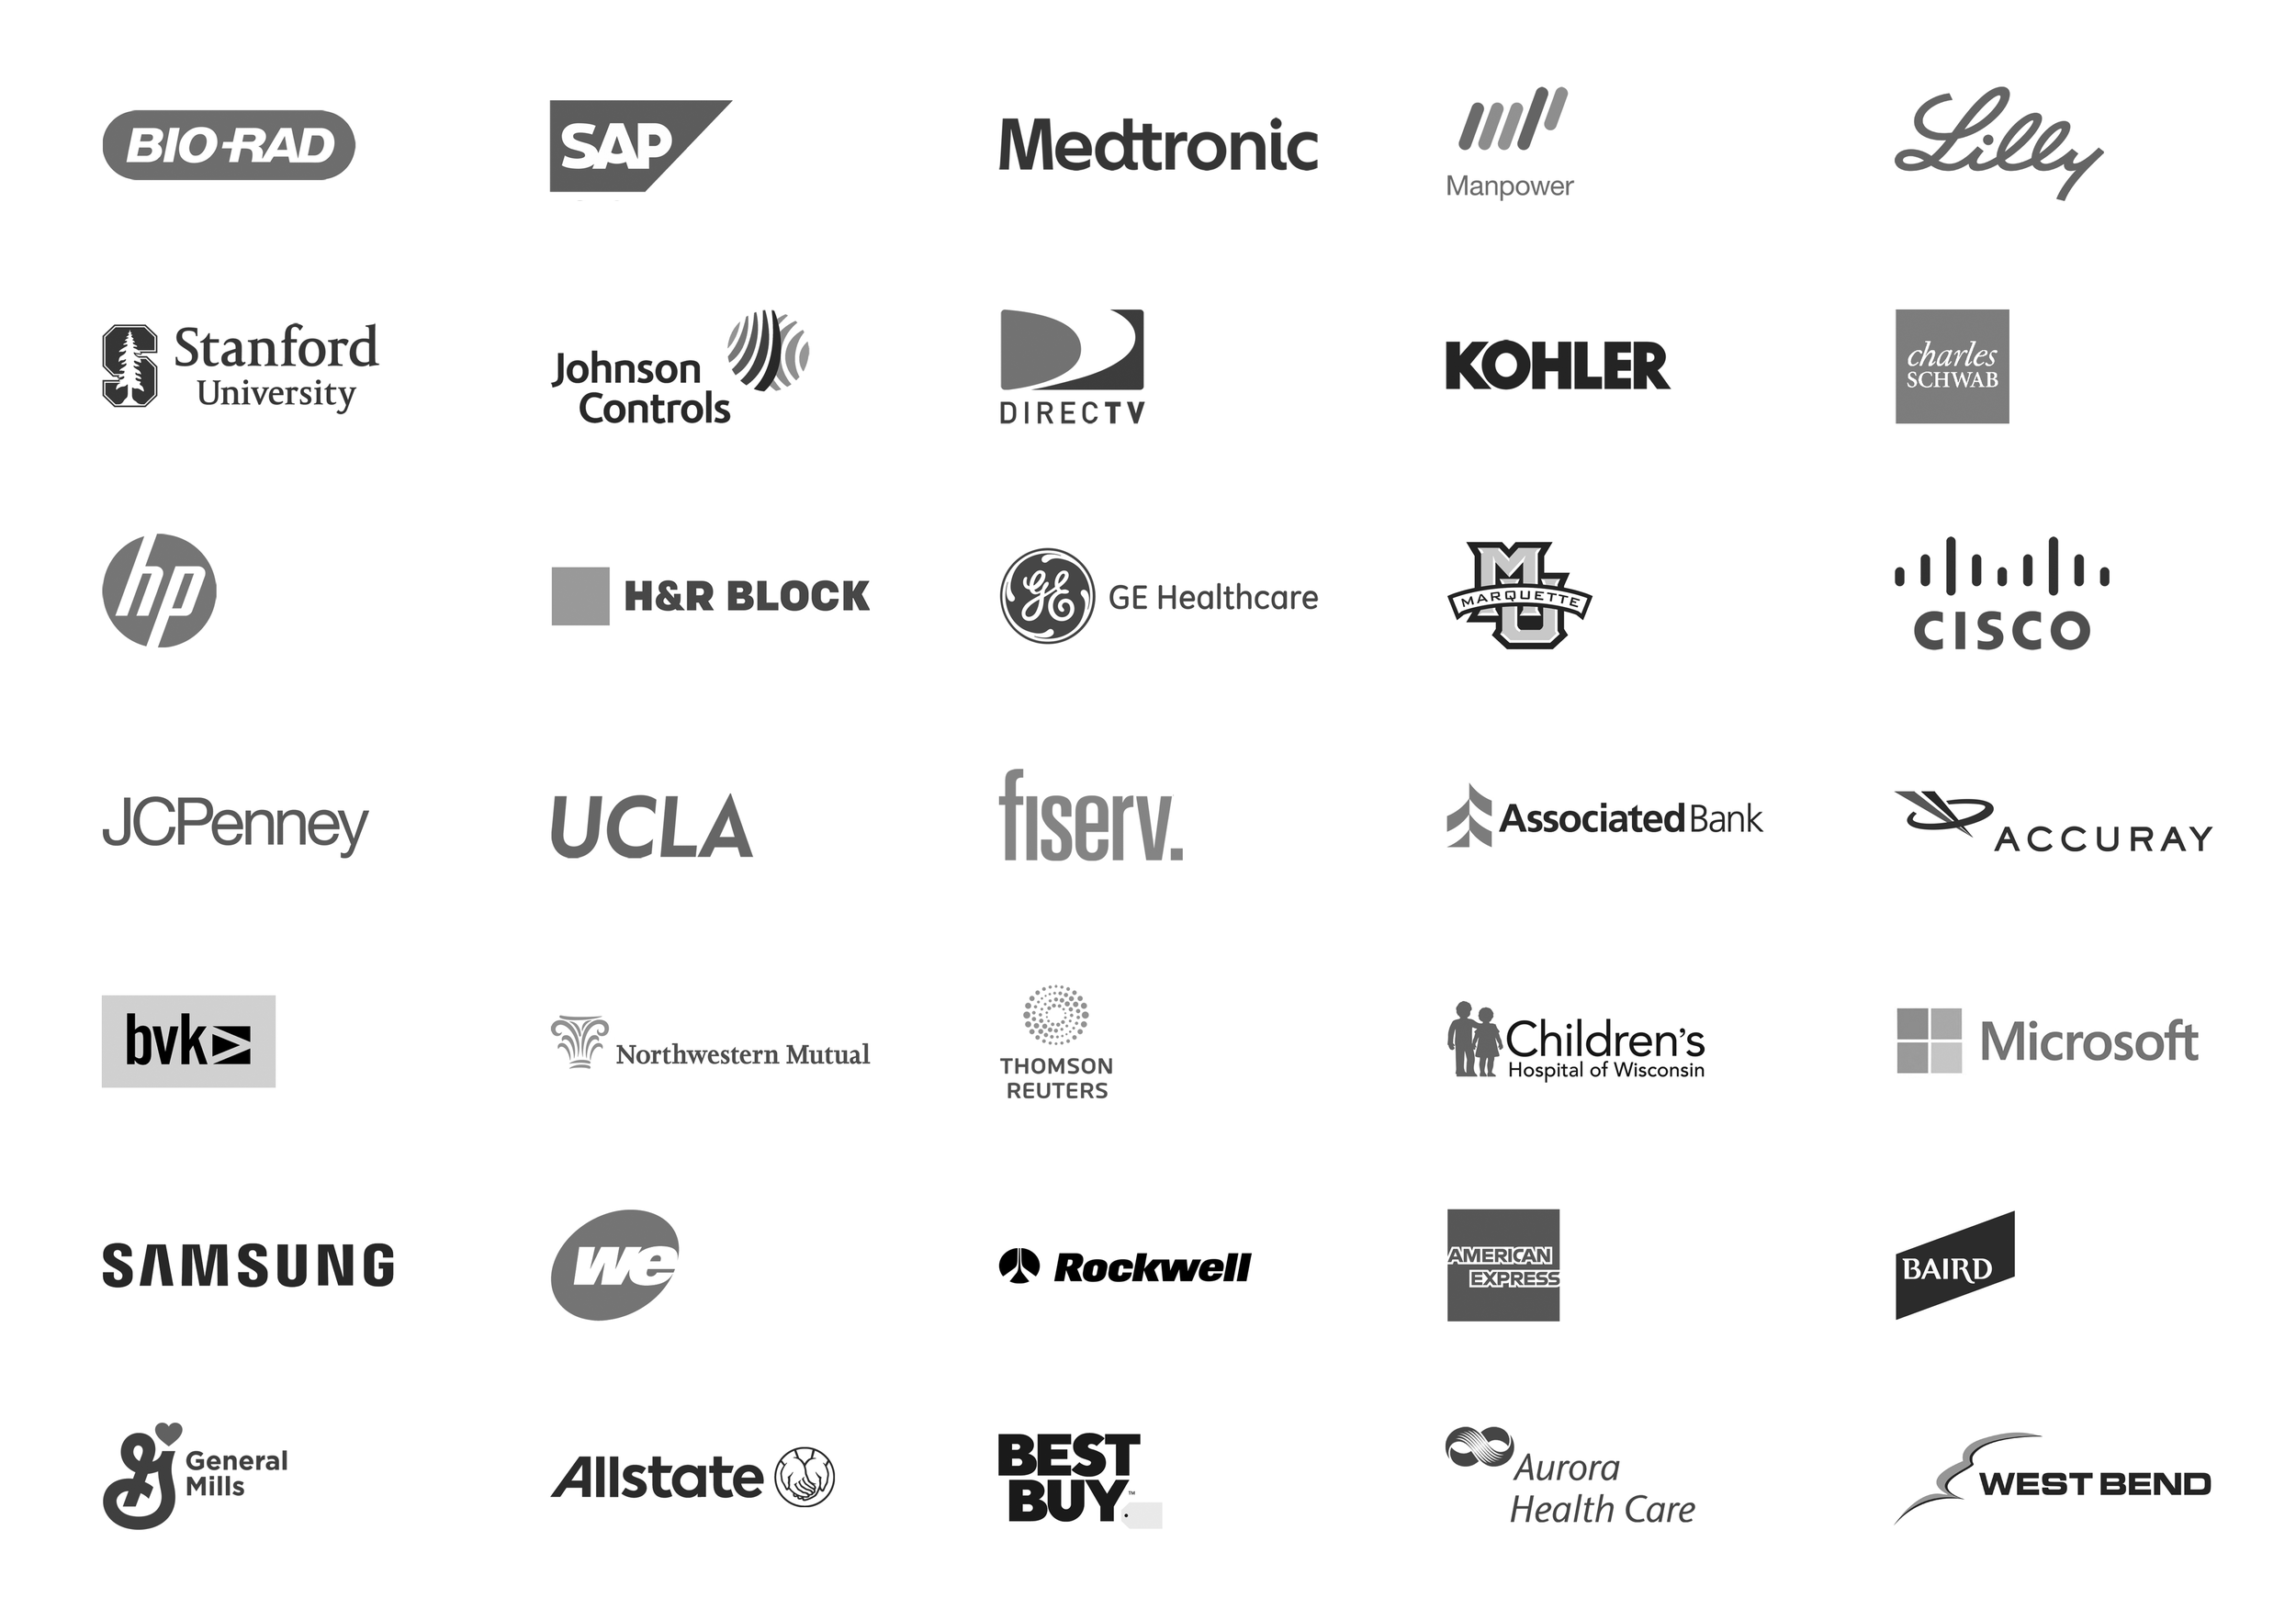 logos.composite.grayscale.v2.png